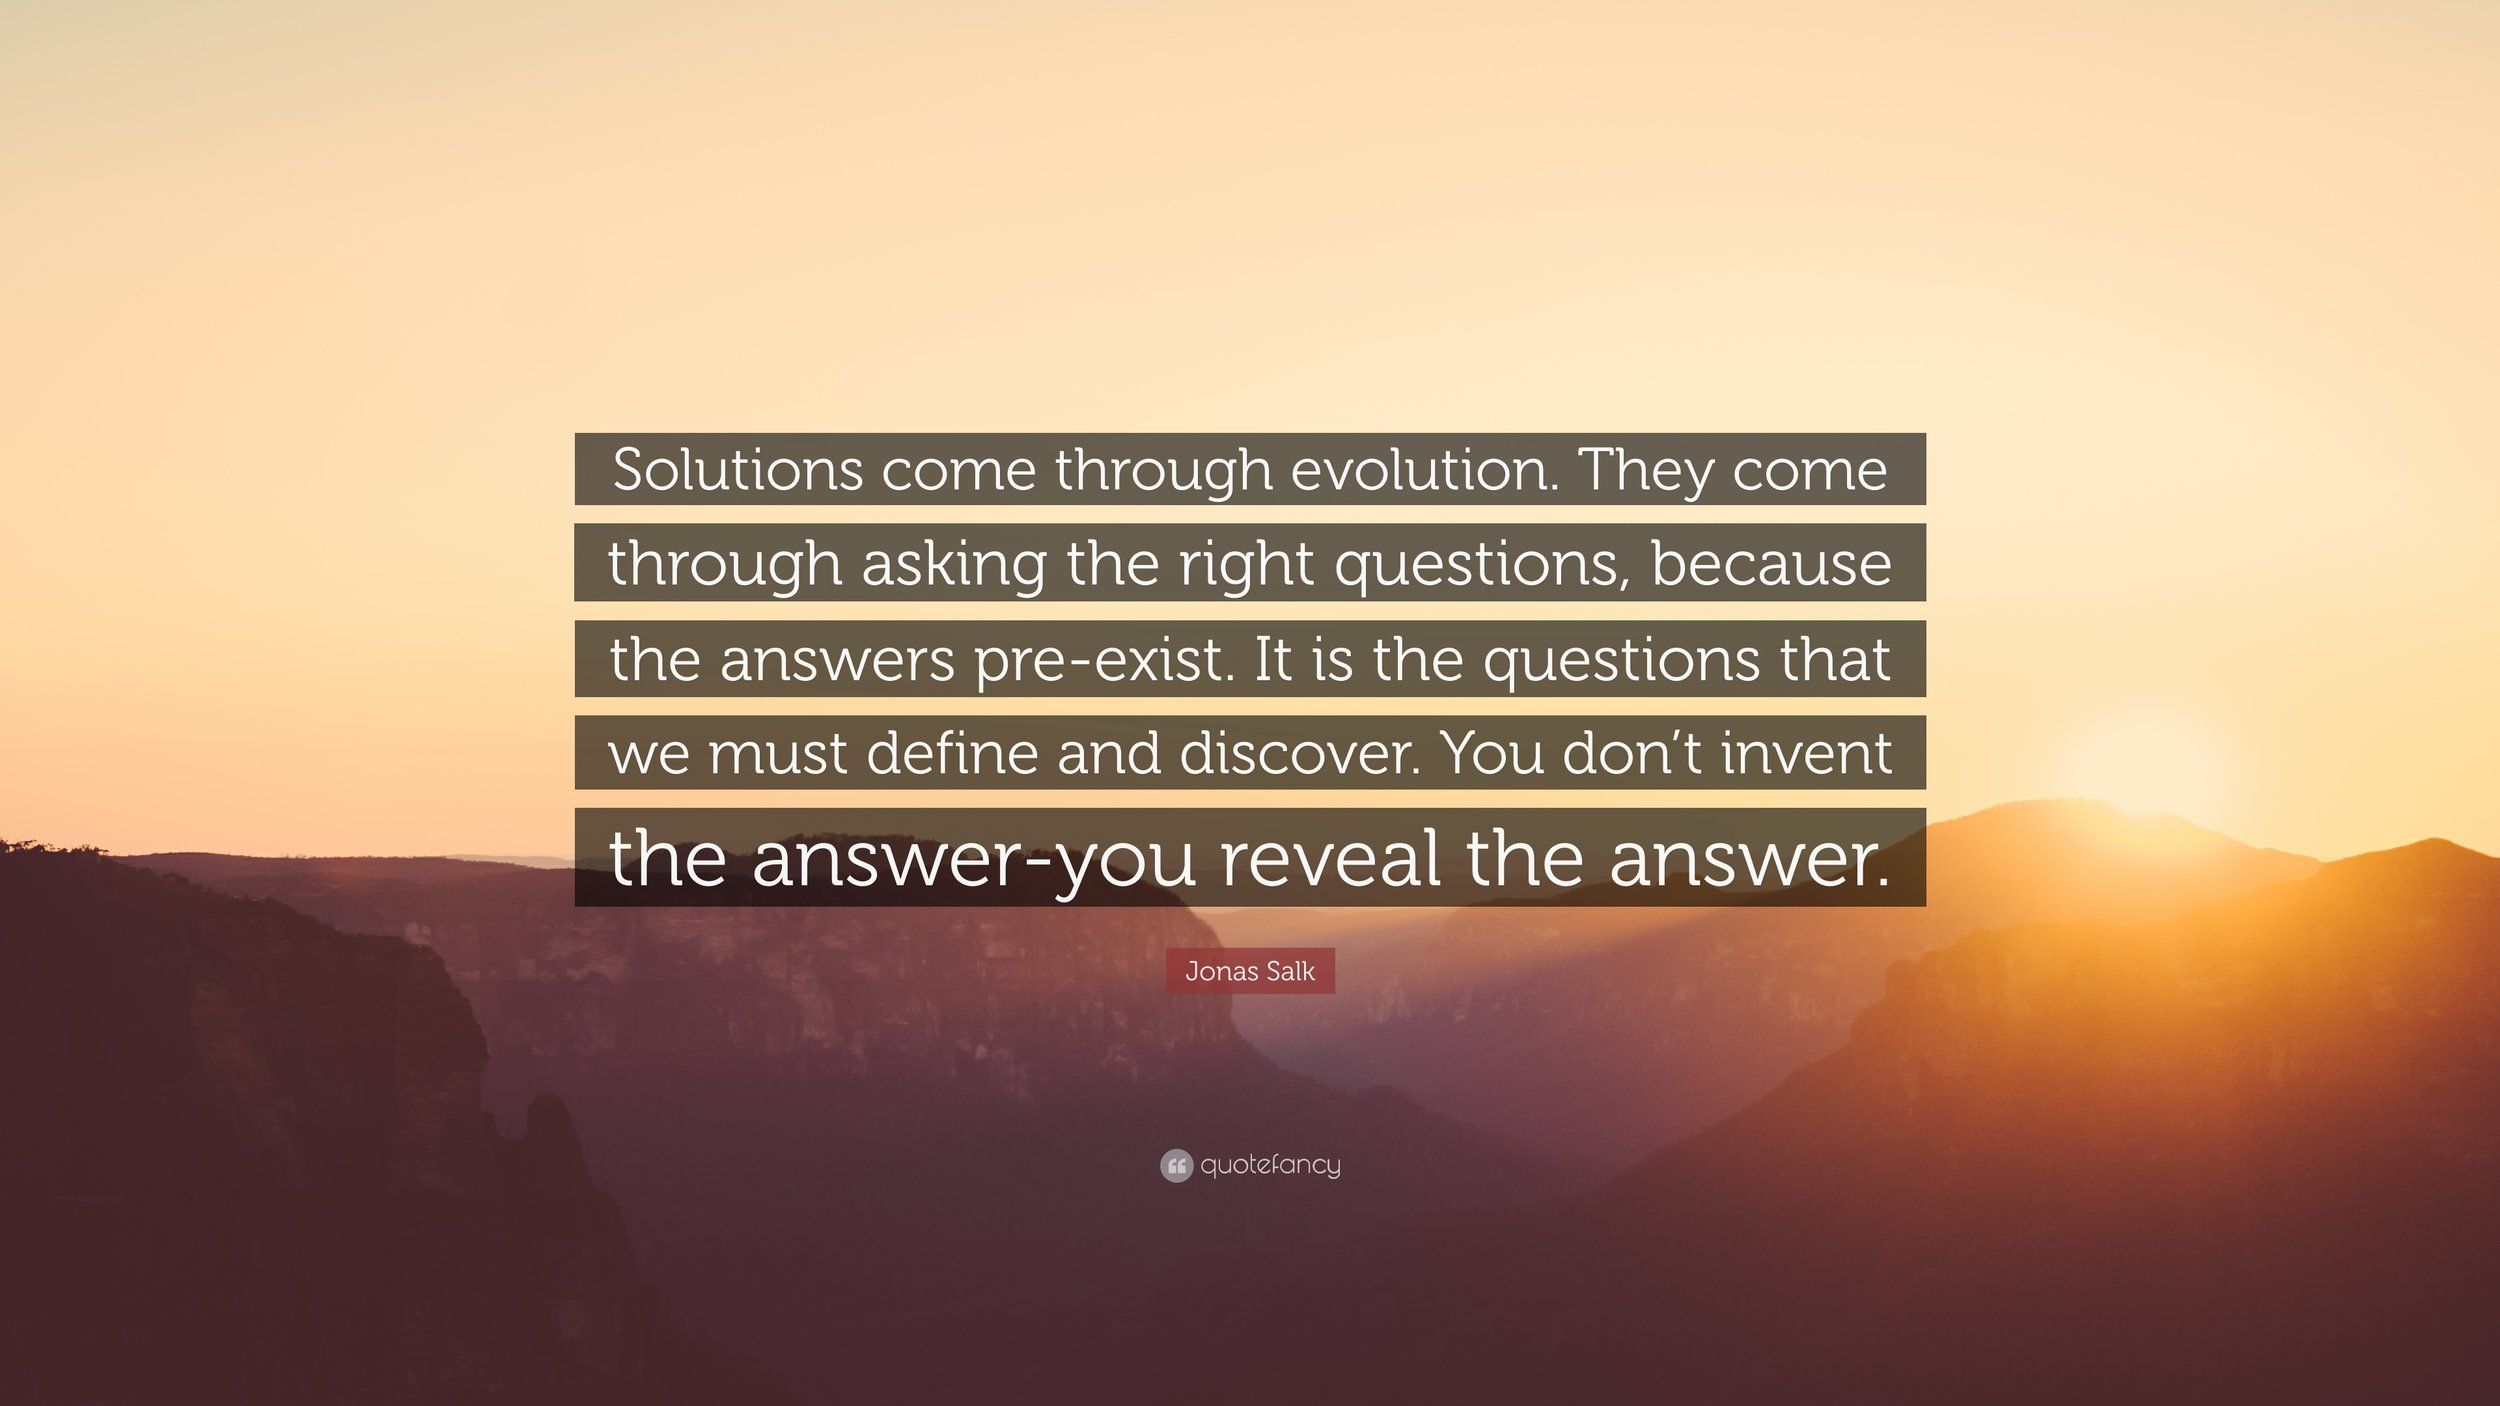 solutions quote 4.jpg